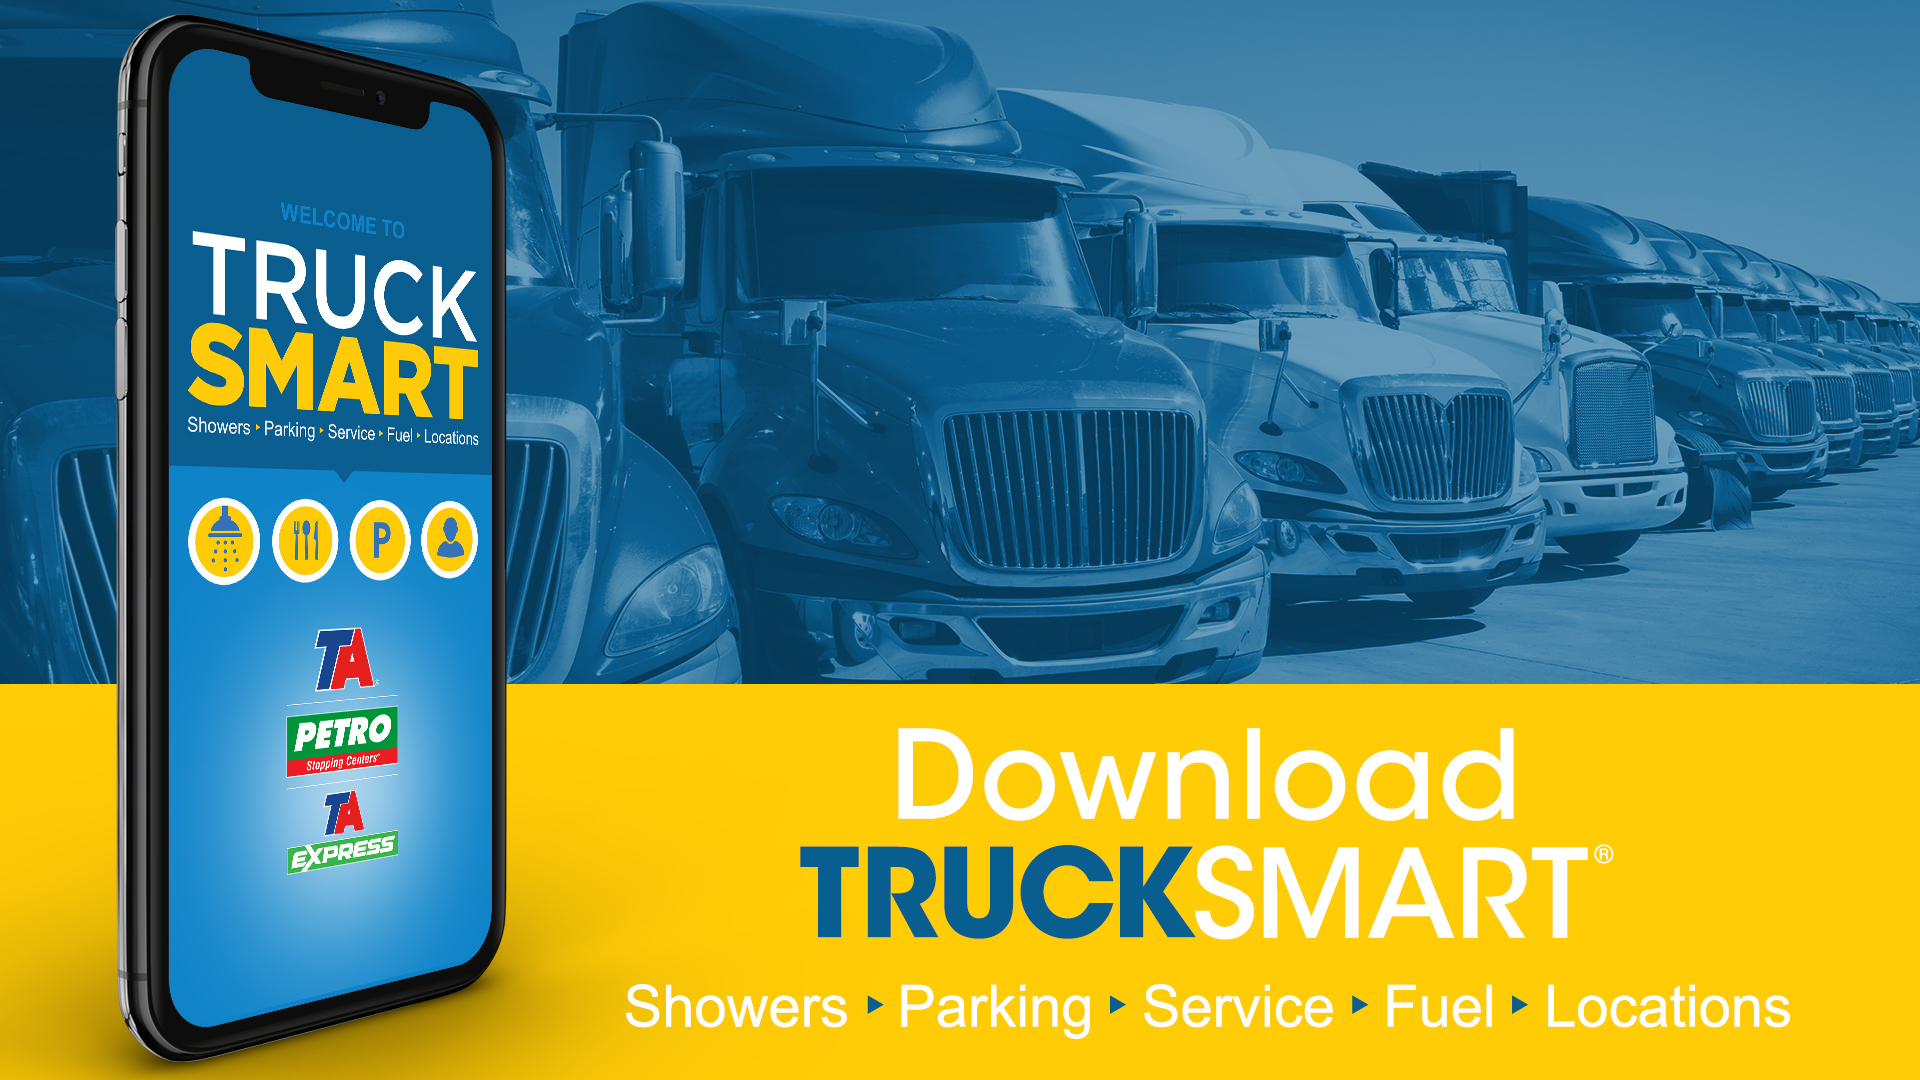 Download TruckSmart Today!